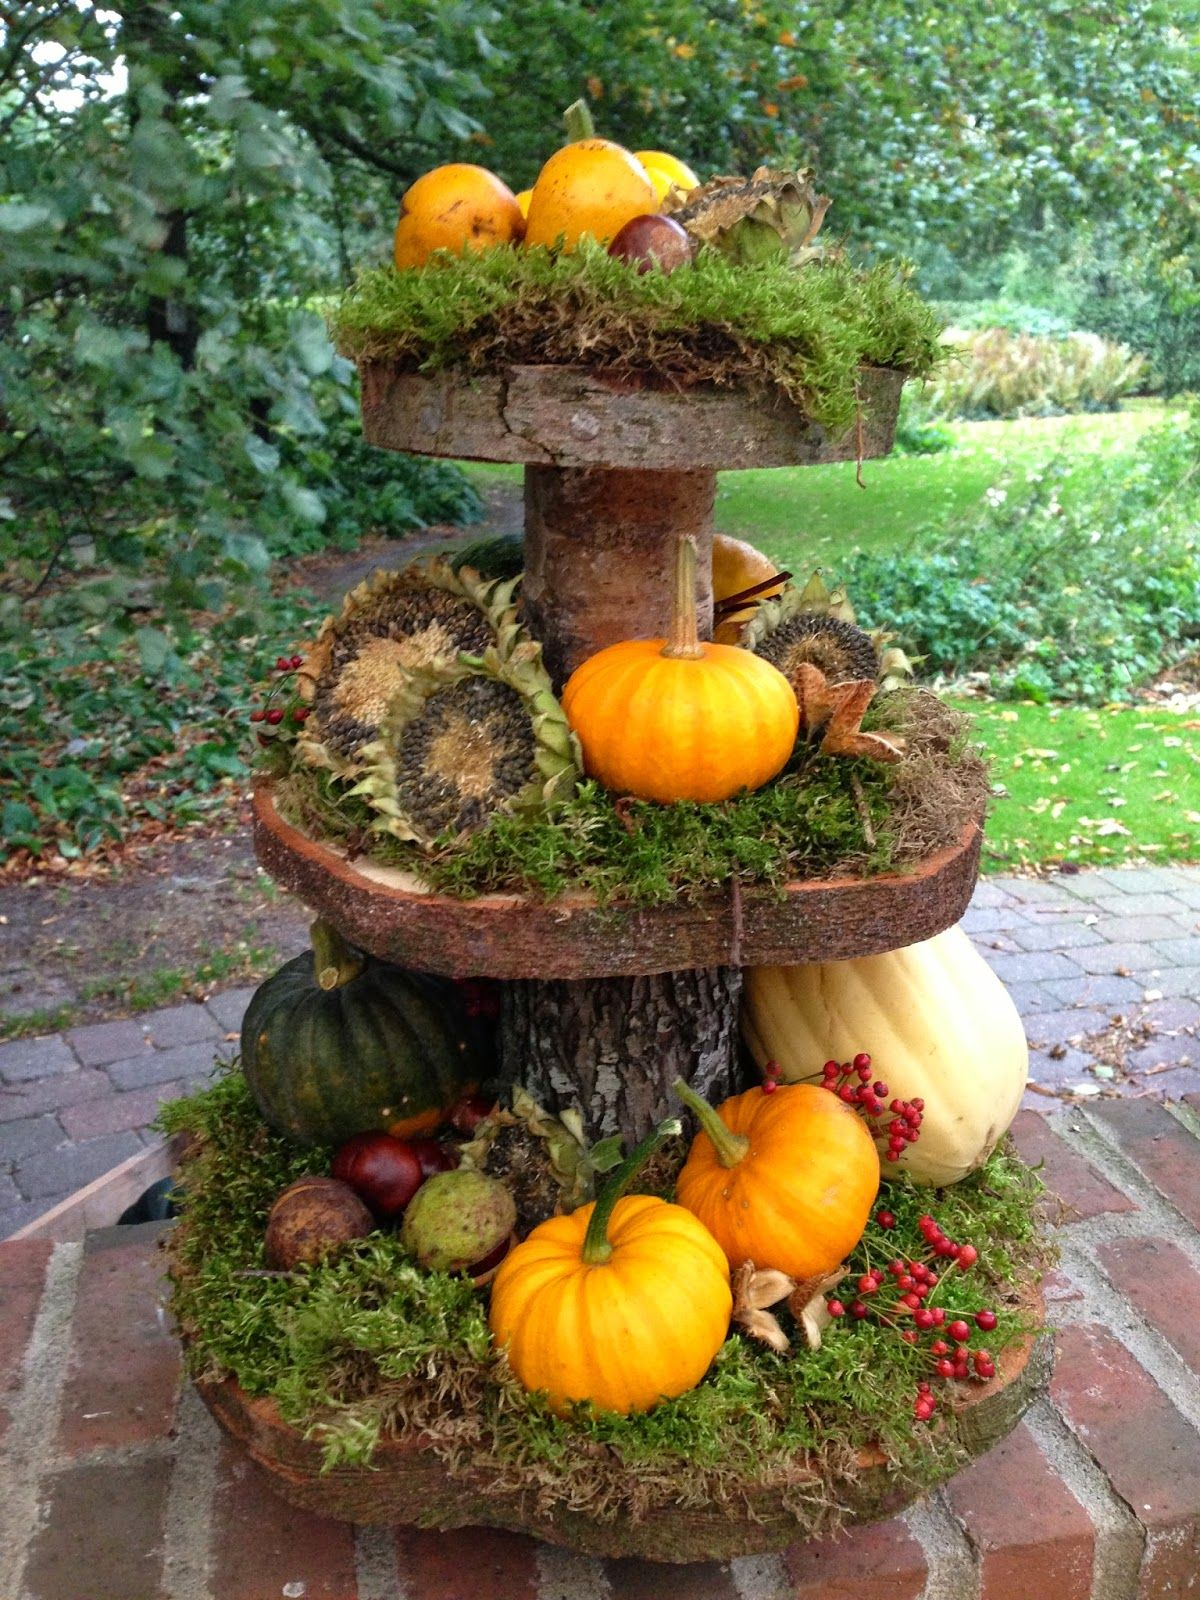 create your own tiered display out of a small tree trunk/branch and make rings out of slices on the verticle, moss, dried sunflowers, pomegranates, nuts, squash, pumpkins and berries #fallseason